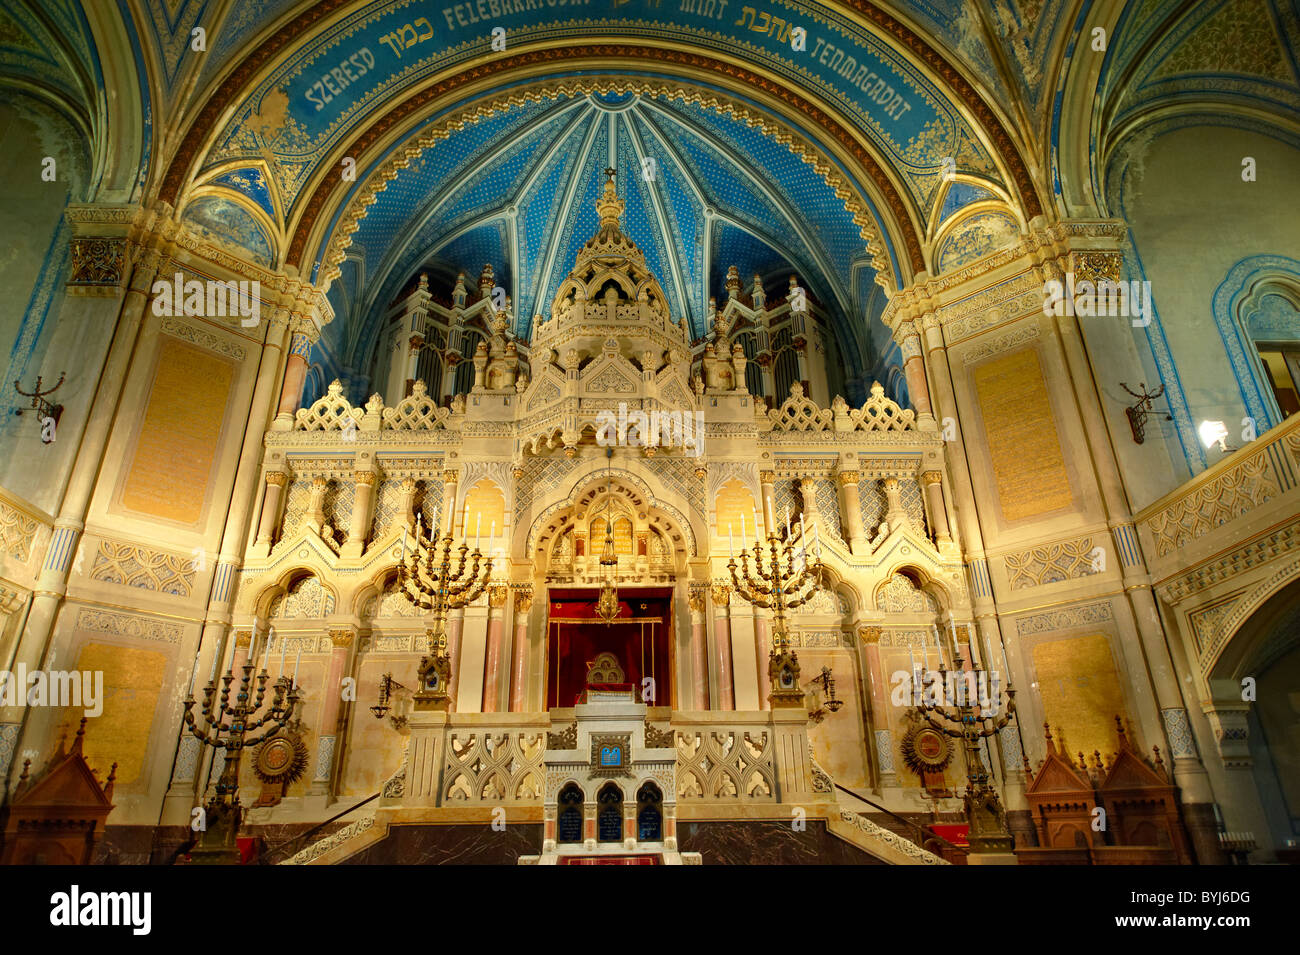 Interior of The Szeged Synagogue, Eclectic Style. Hungary - Stock Image